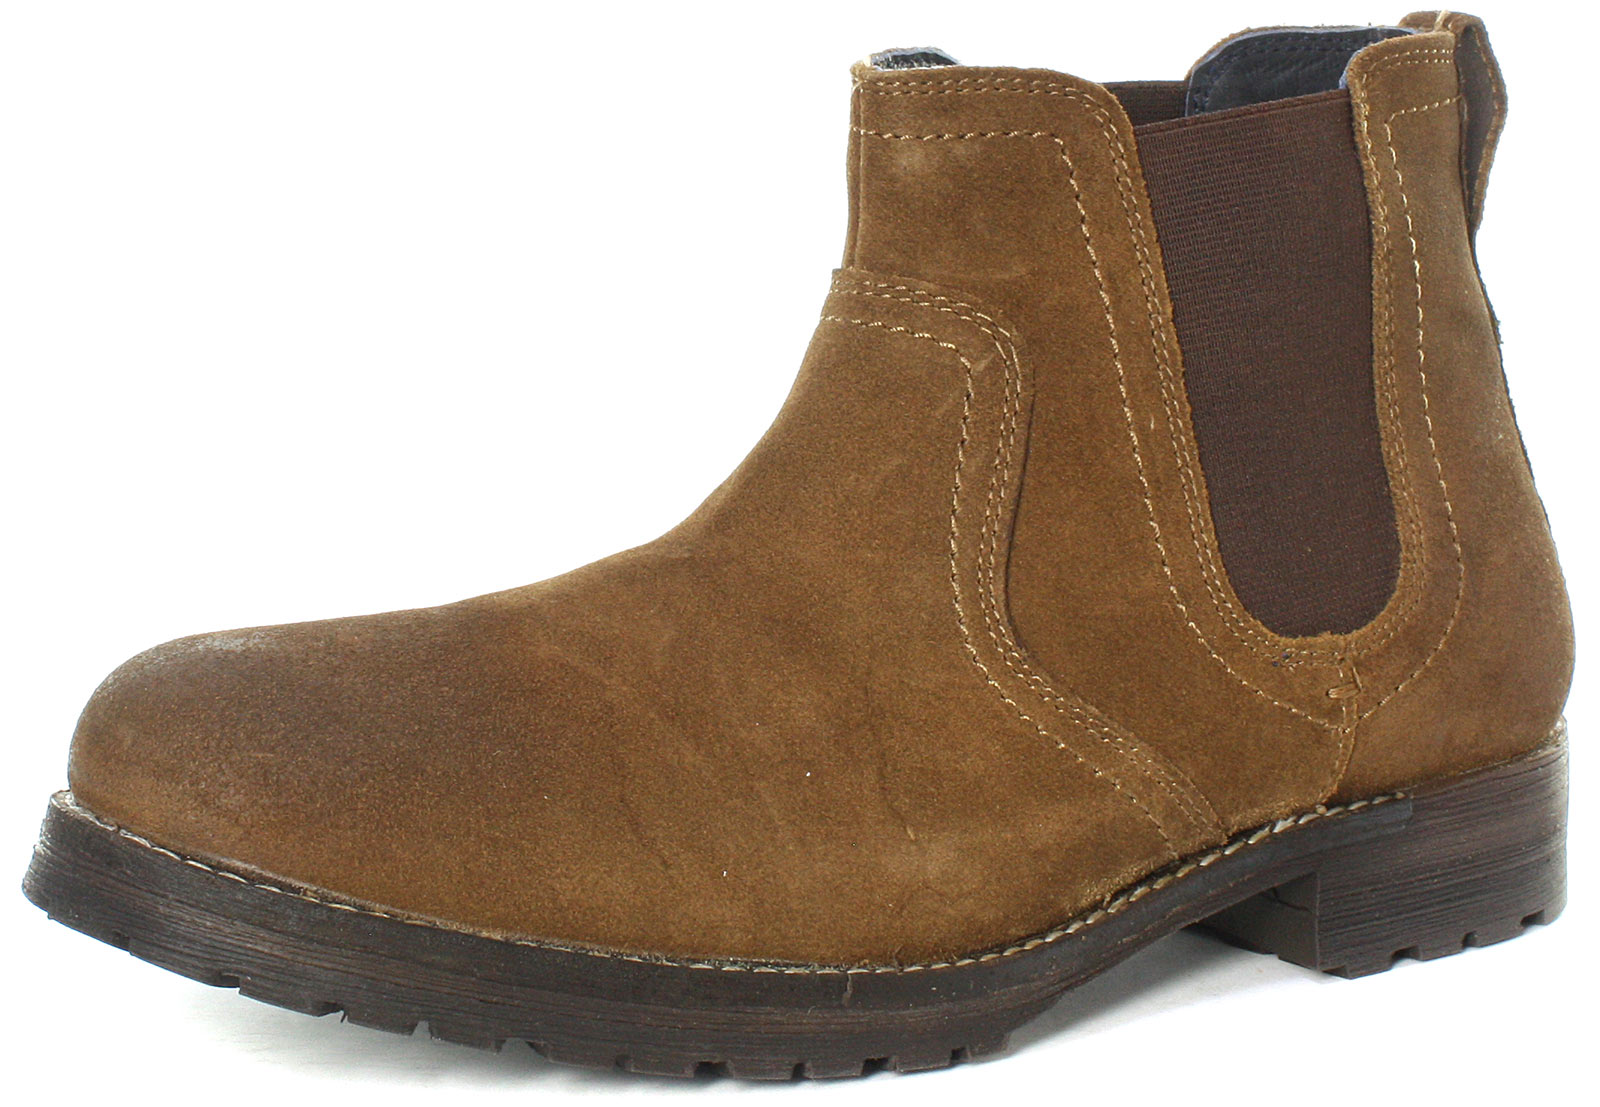 New-Red-Tape-Clifton-Suede-Mens-Chelsea-Boots-ALL-SIZES